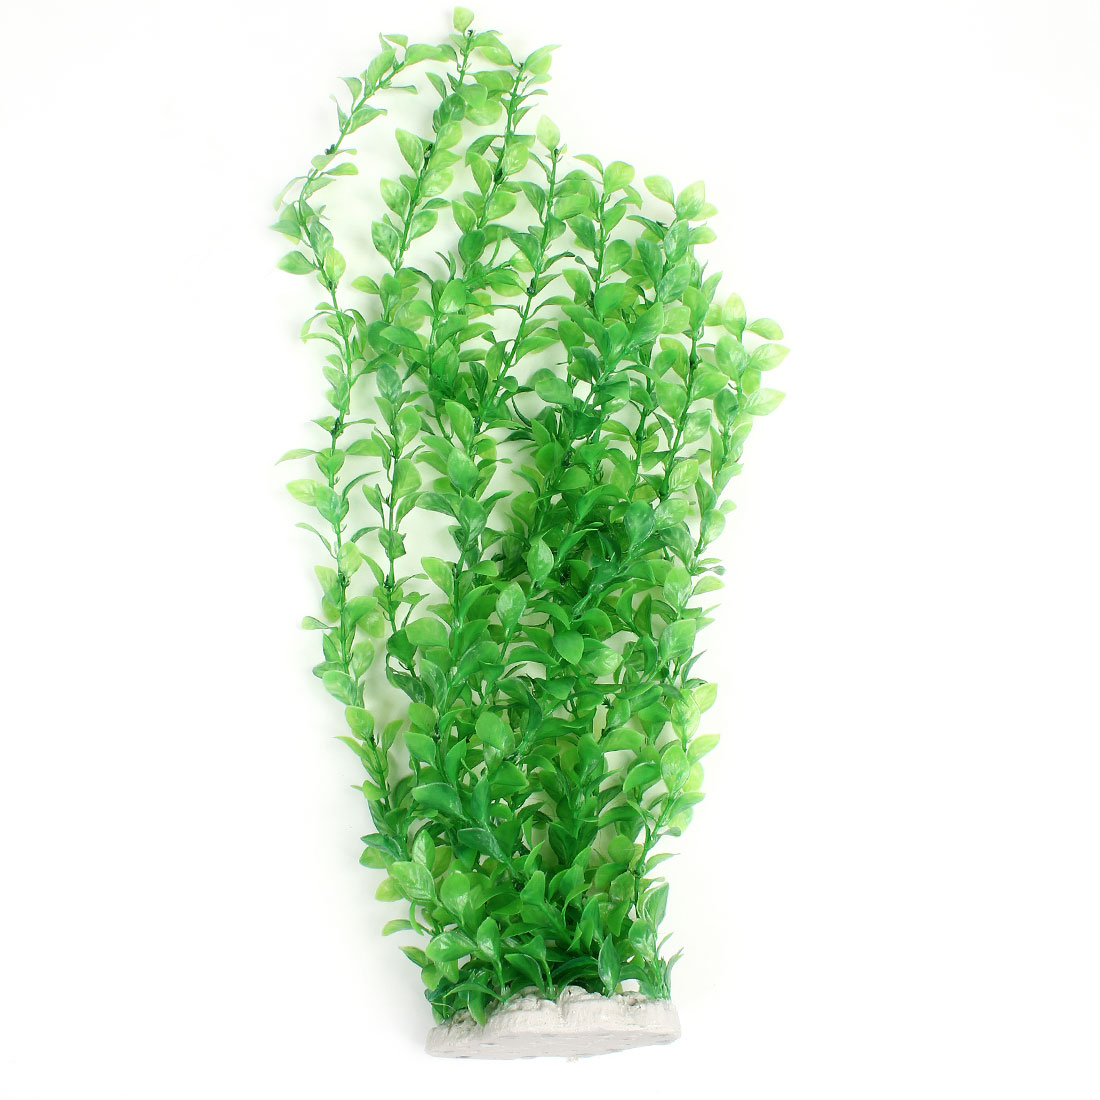 47cm Height Green Plastic Underwater Grass Ornament for Fish Tank